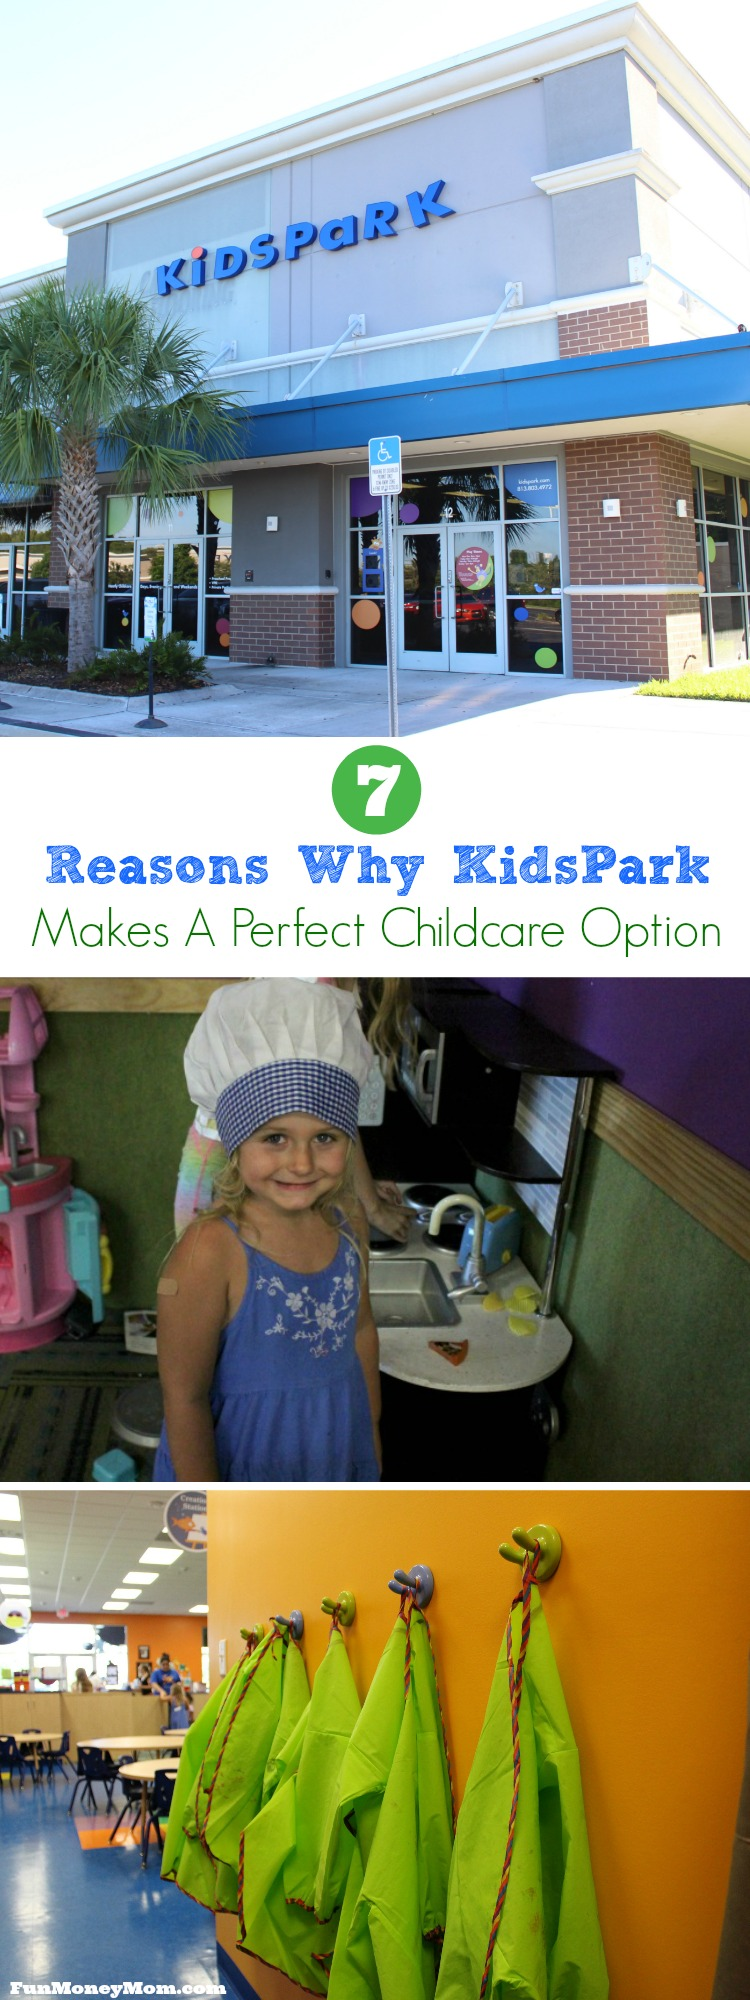 Need a night out but don't have anyone to take care of the kids? Our kids recently had a blast at KidsPark! Find out what makes it such a great childcare option.